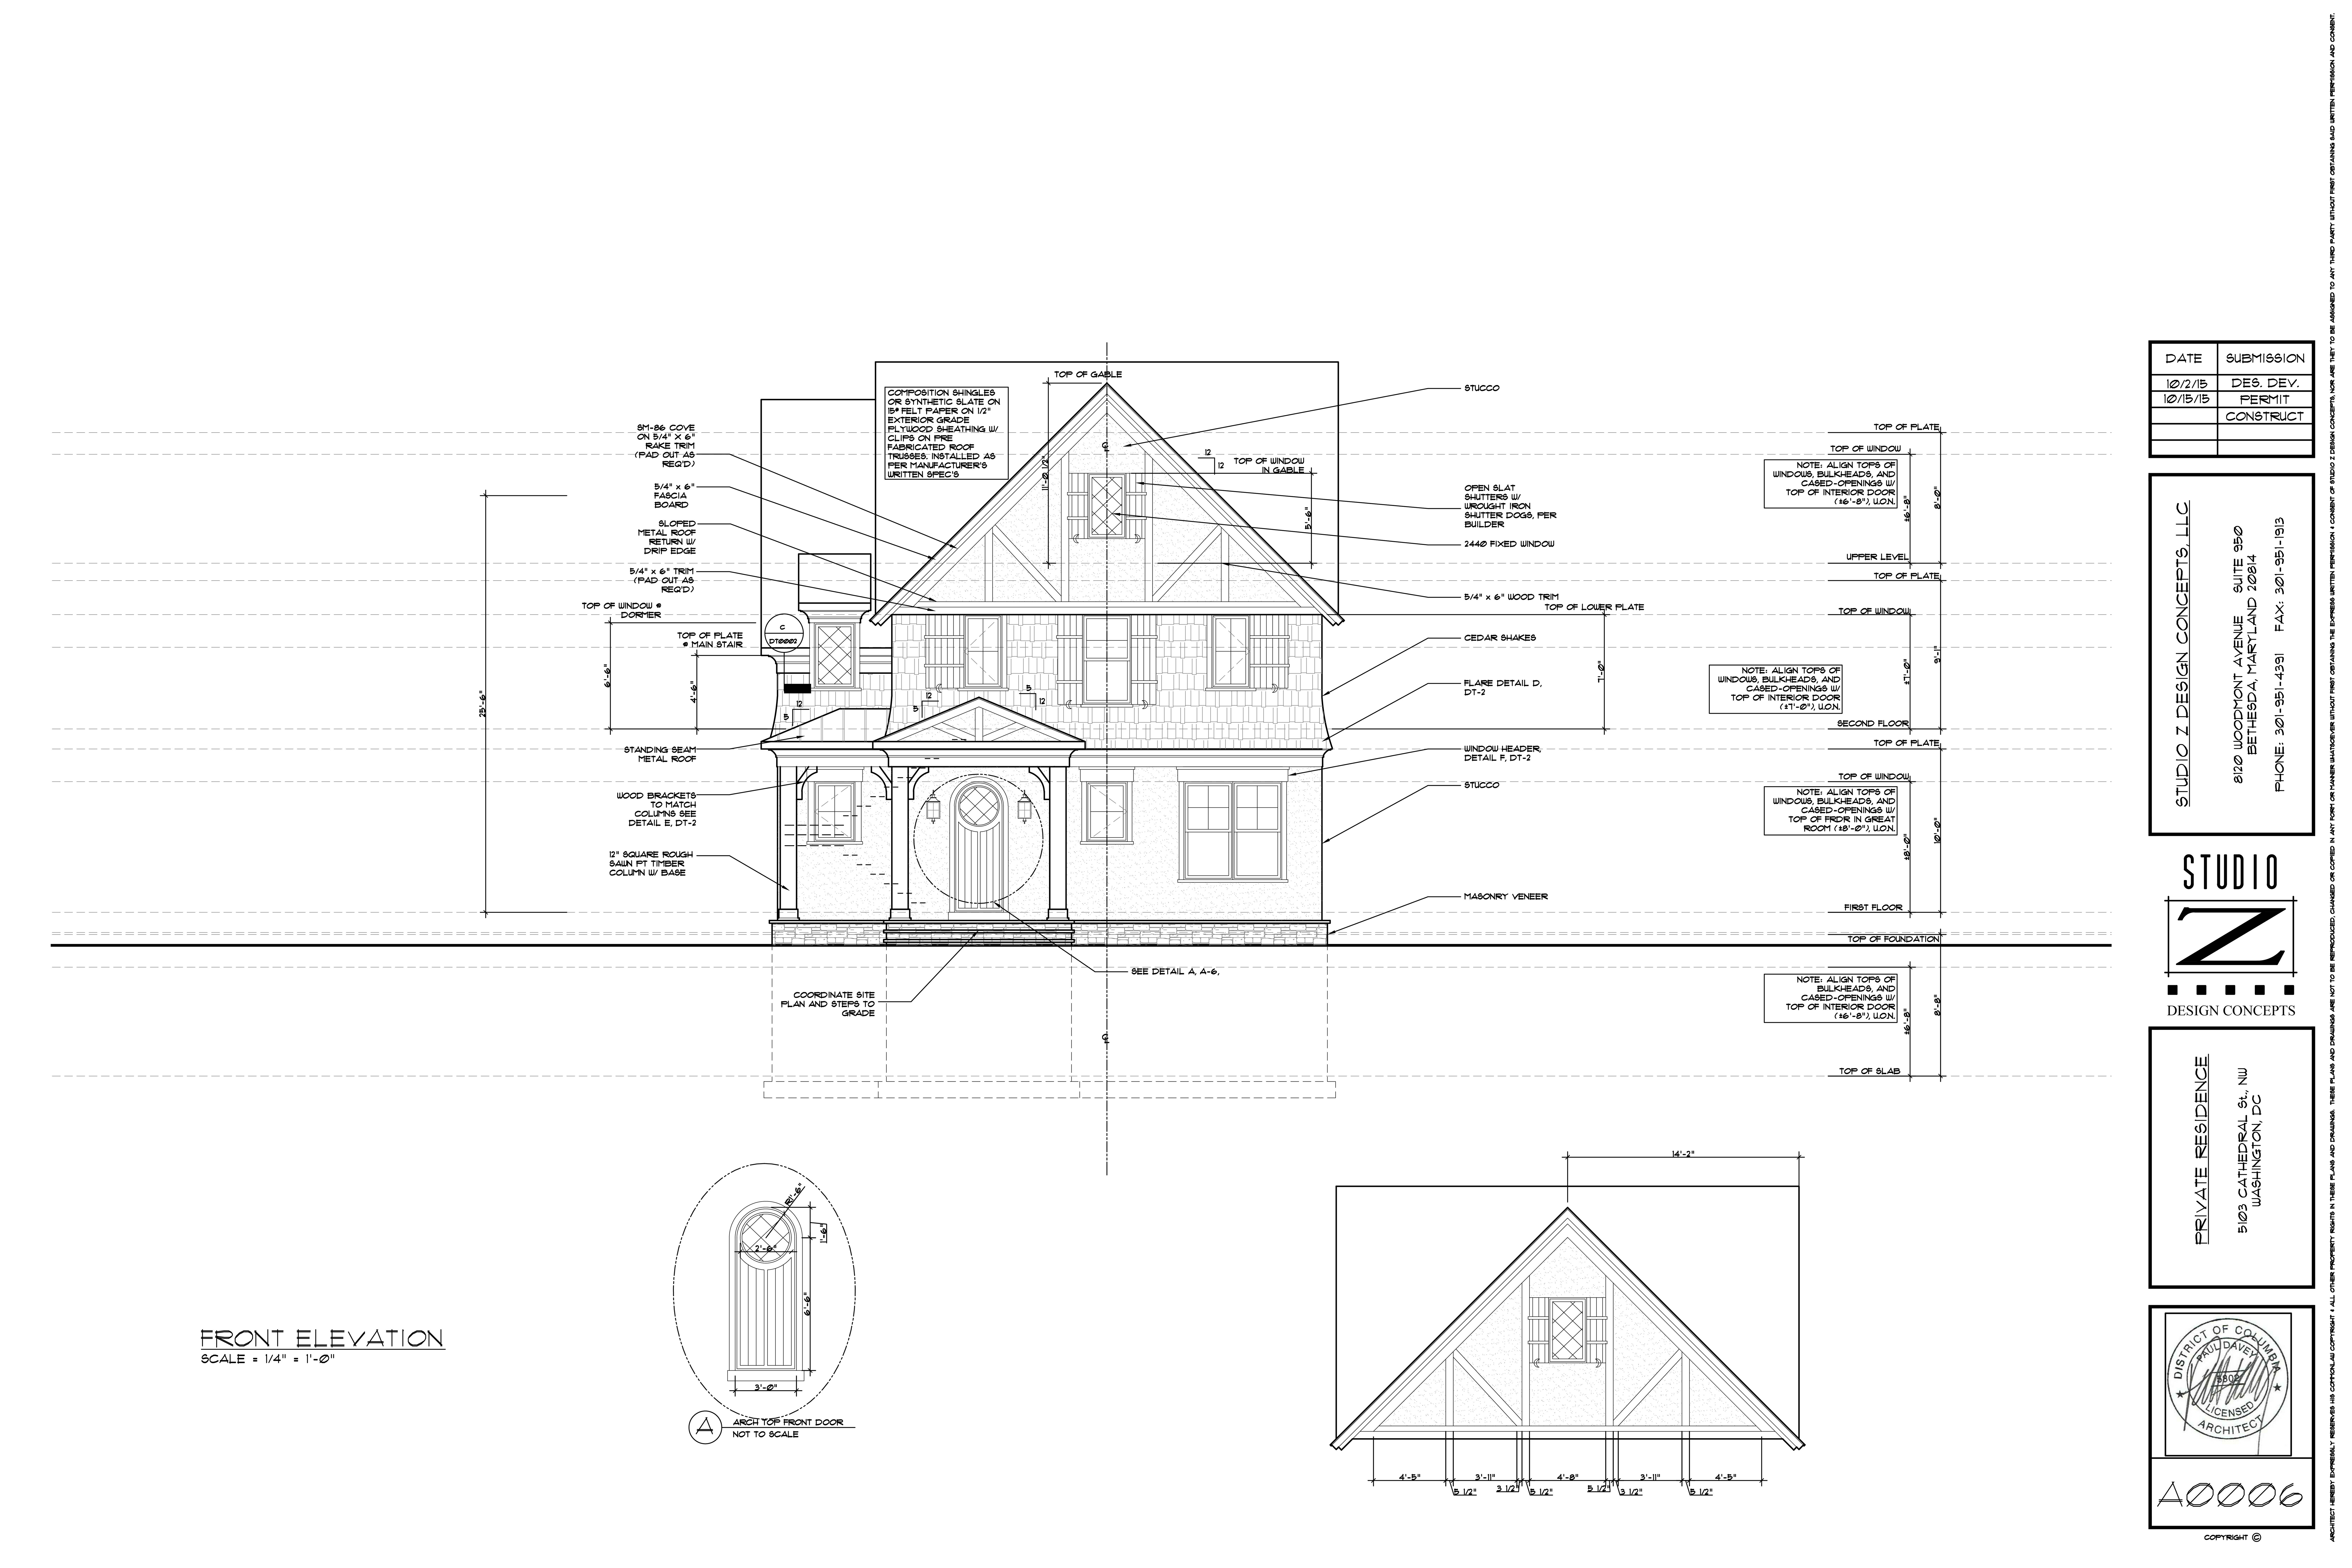 A0006_FRONT ELEVATION_1